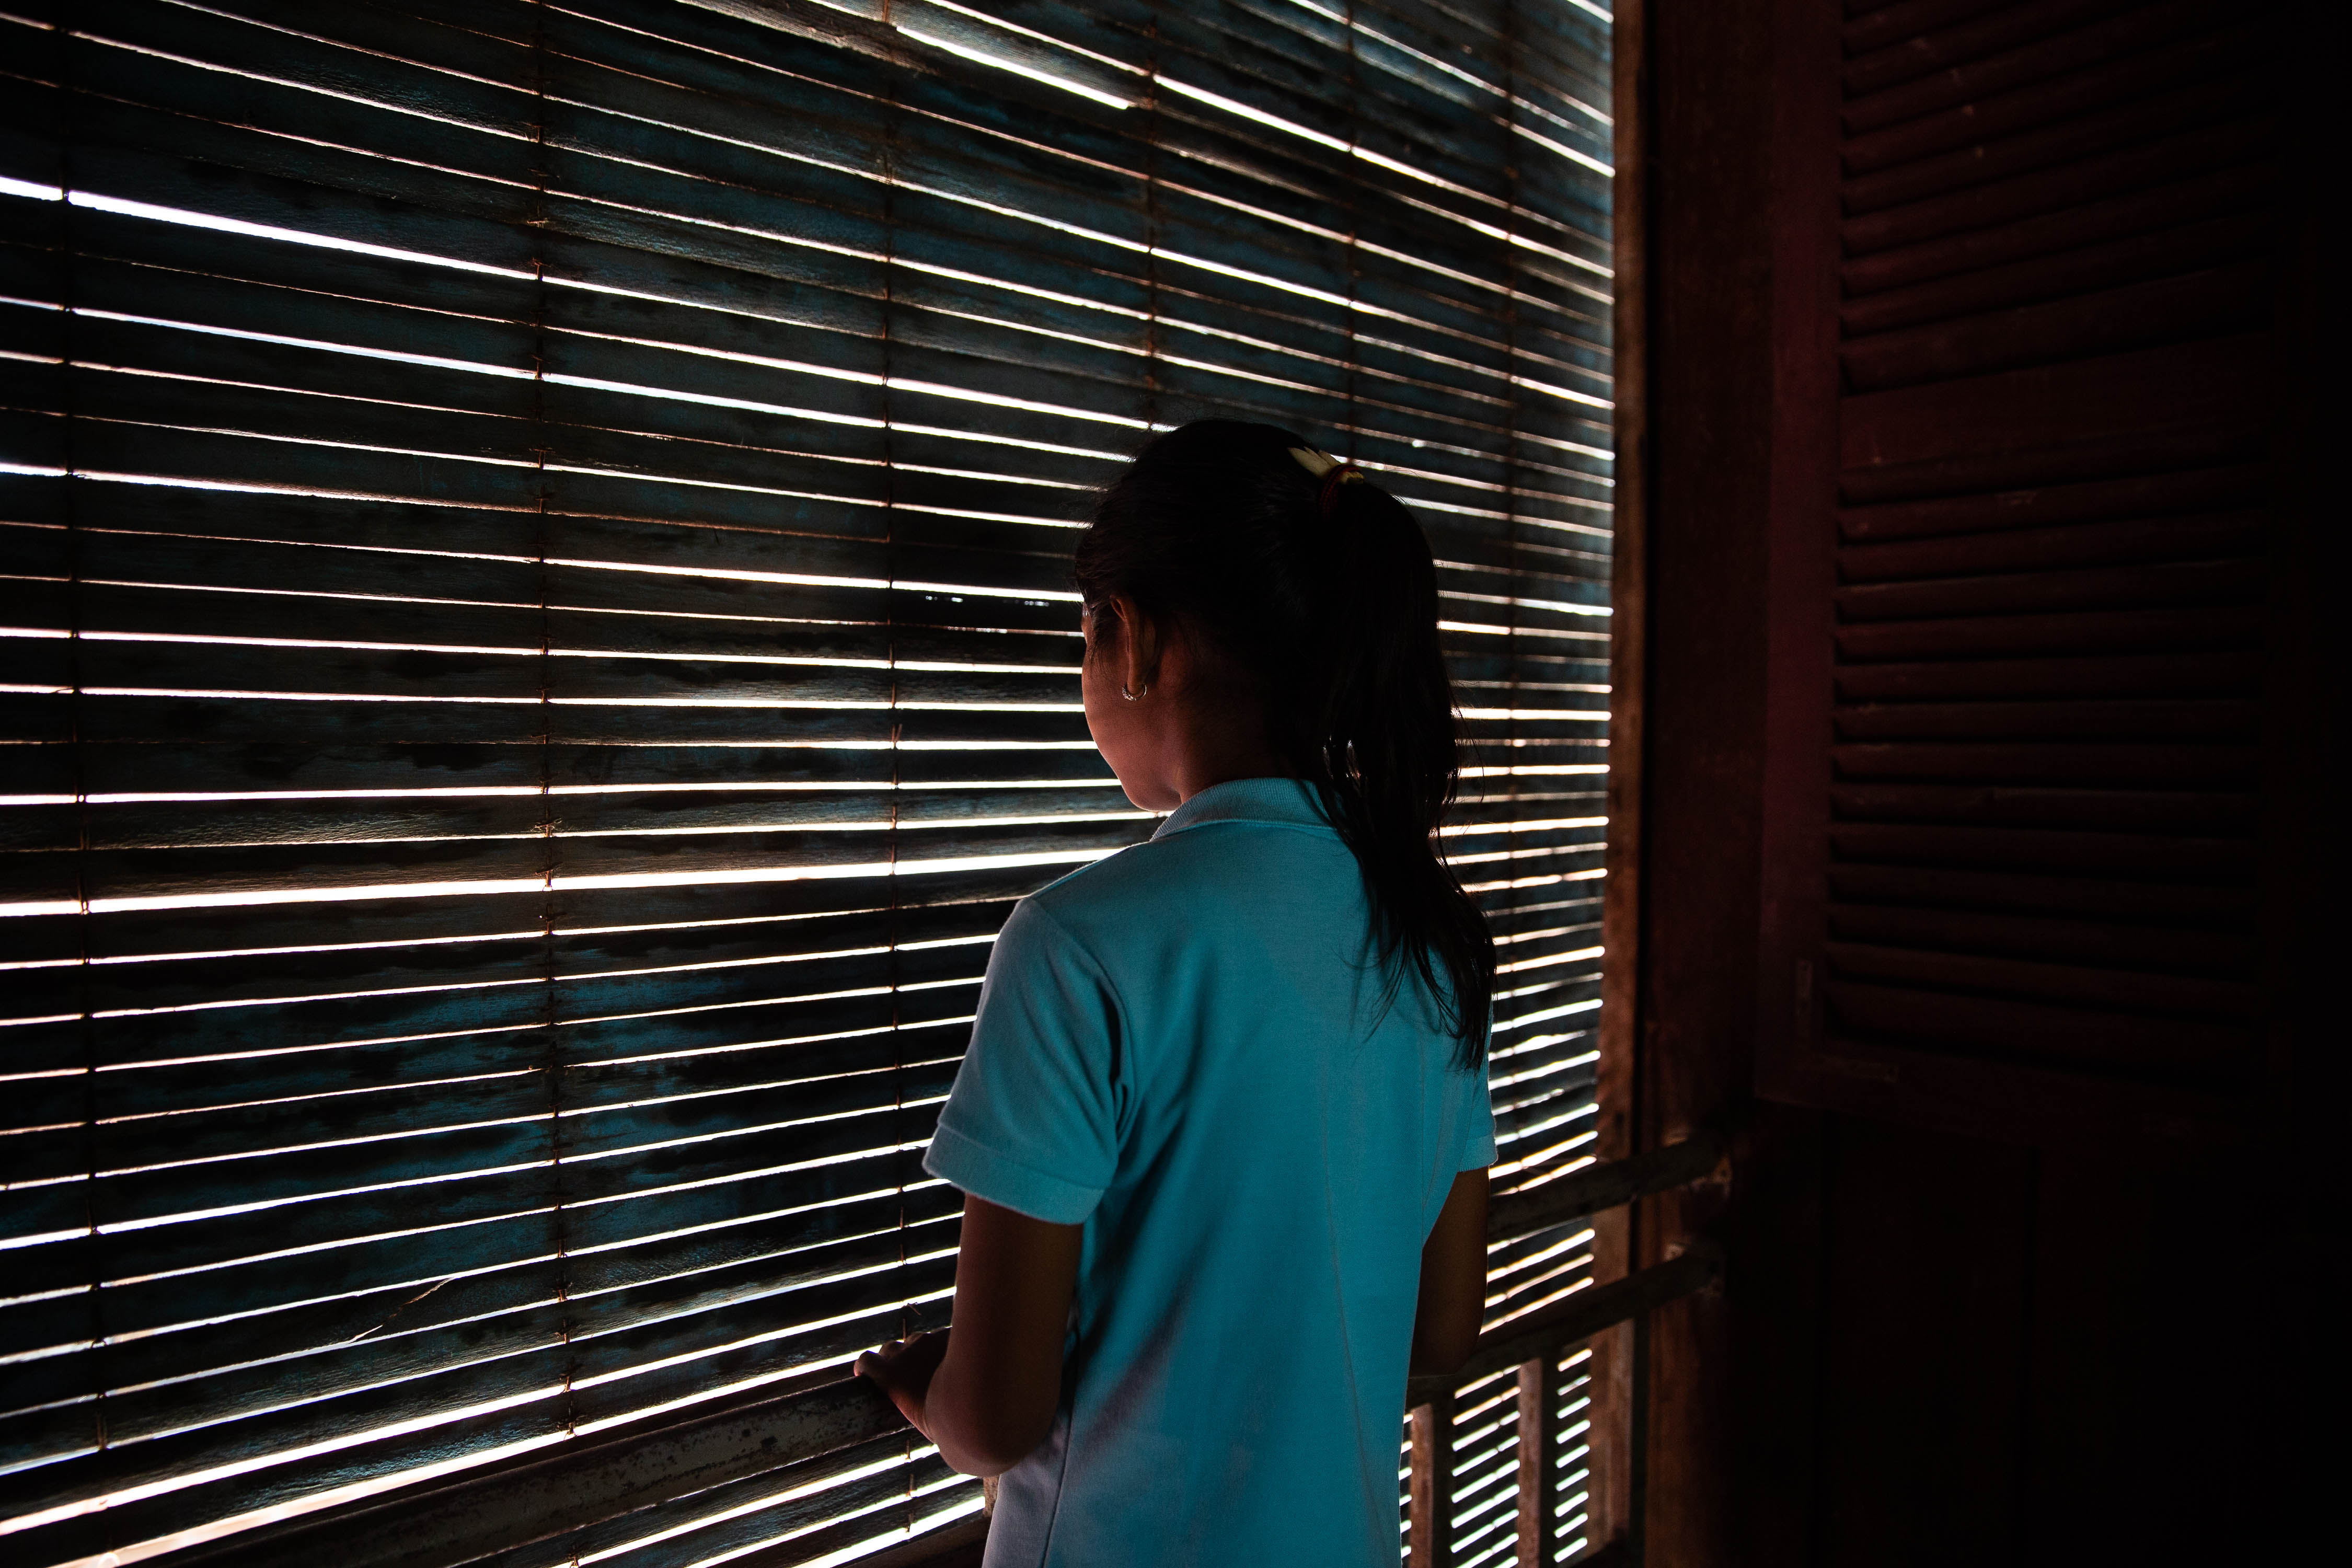 The Rockingham Magistrate's Court was informed that the teacher's victims aged 16 at the time of the offences were abused multiple times. (Getty Images)